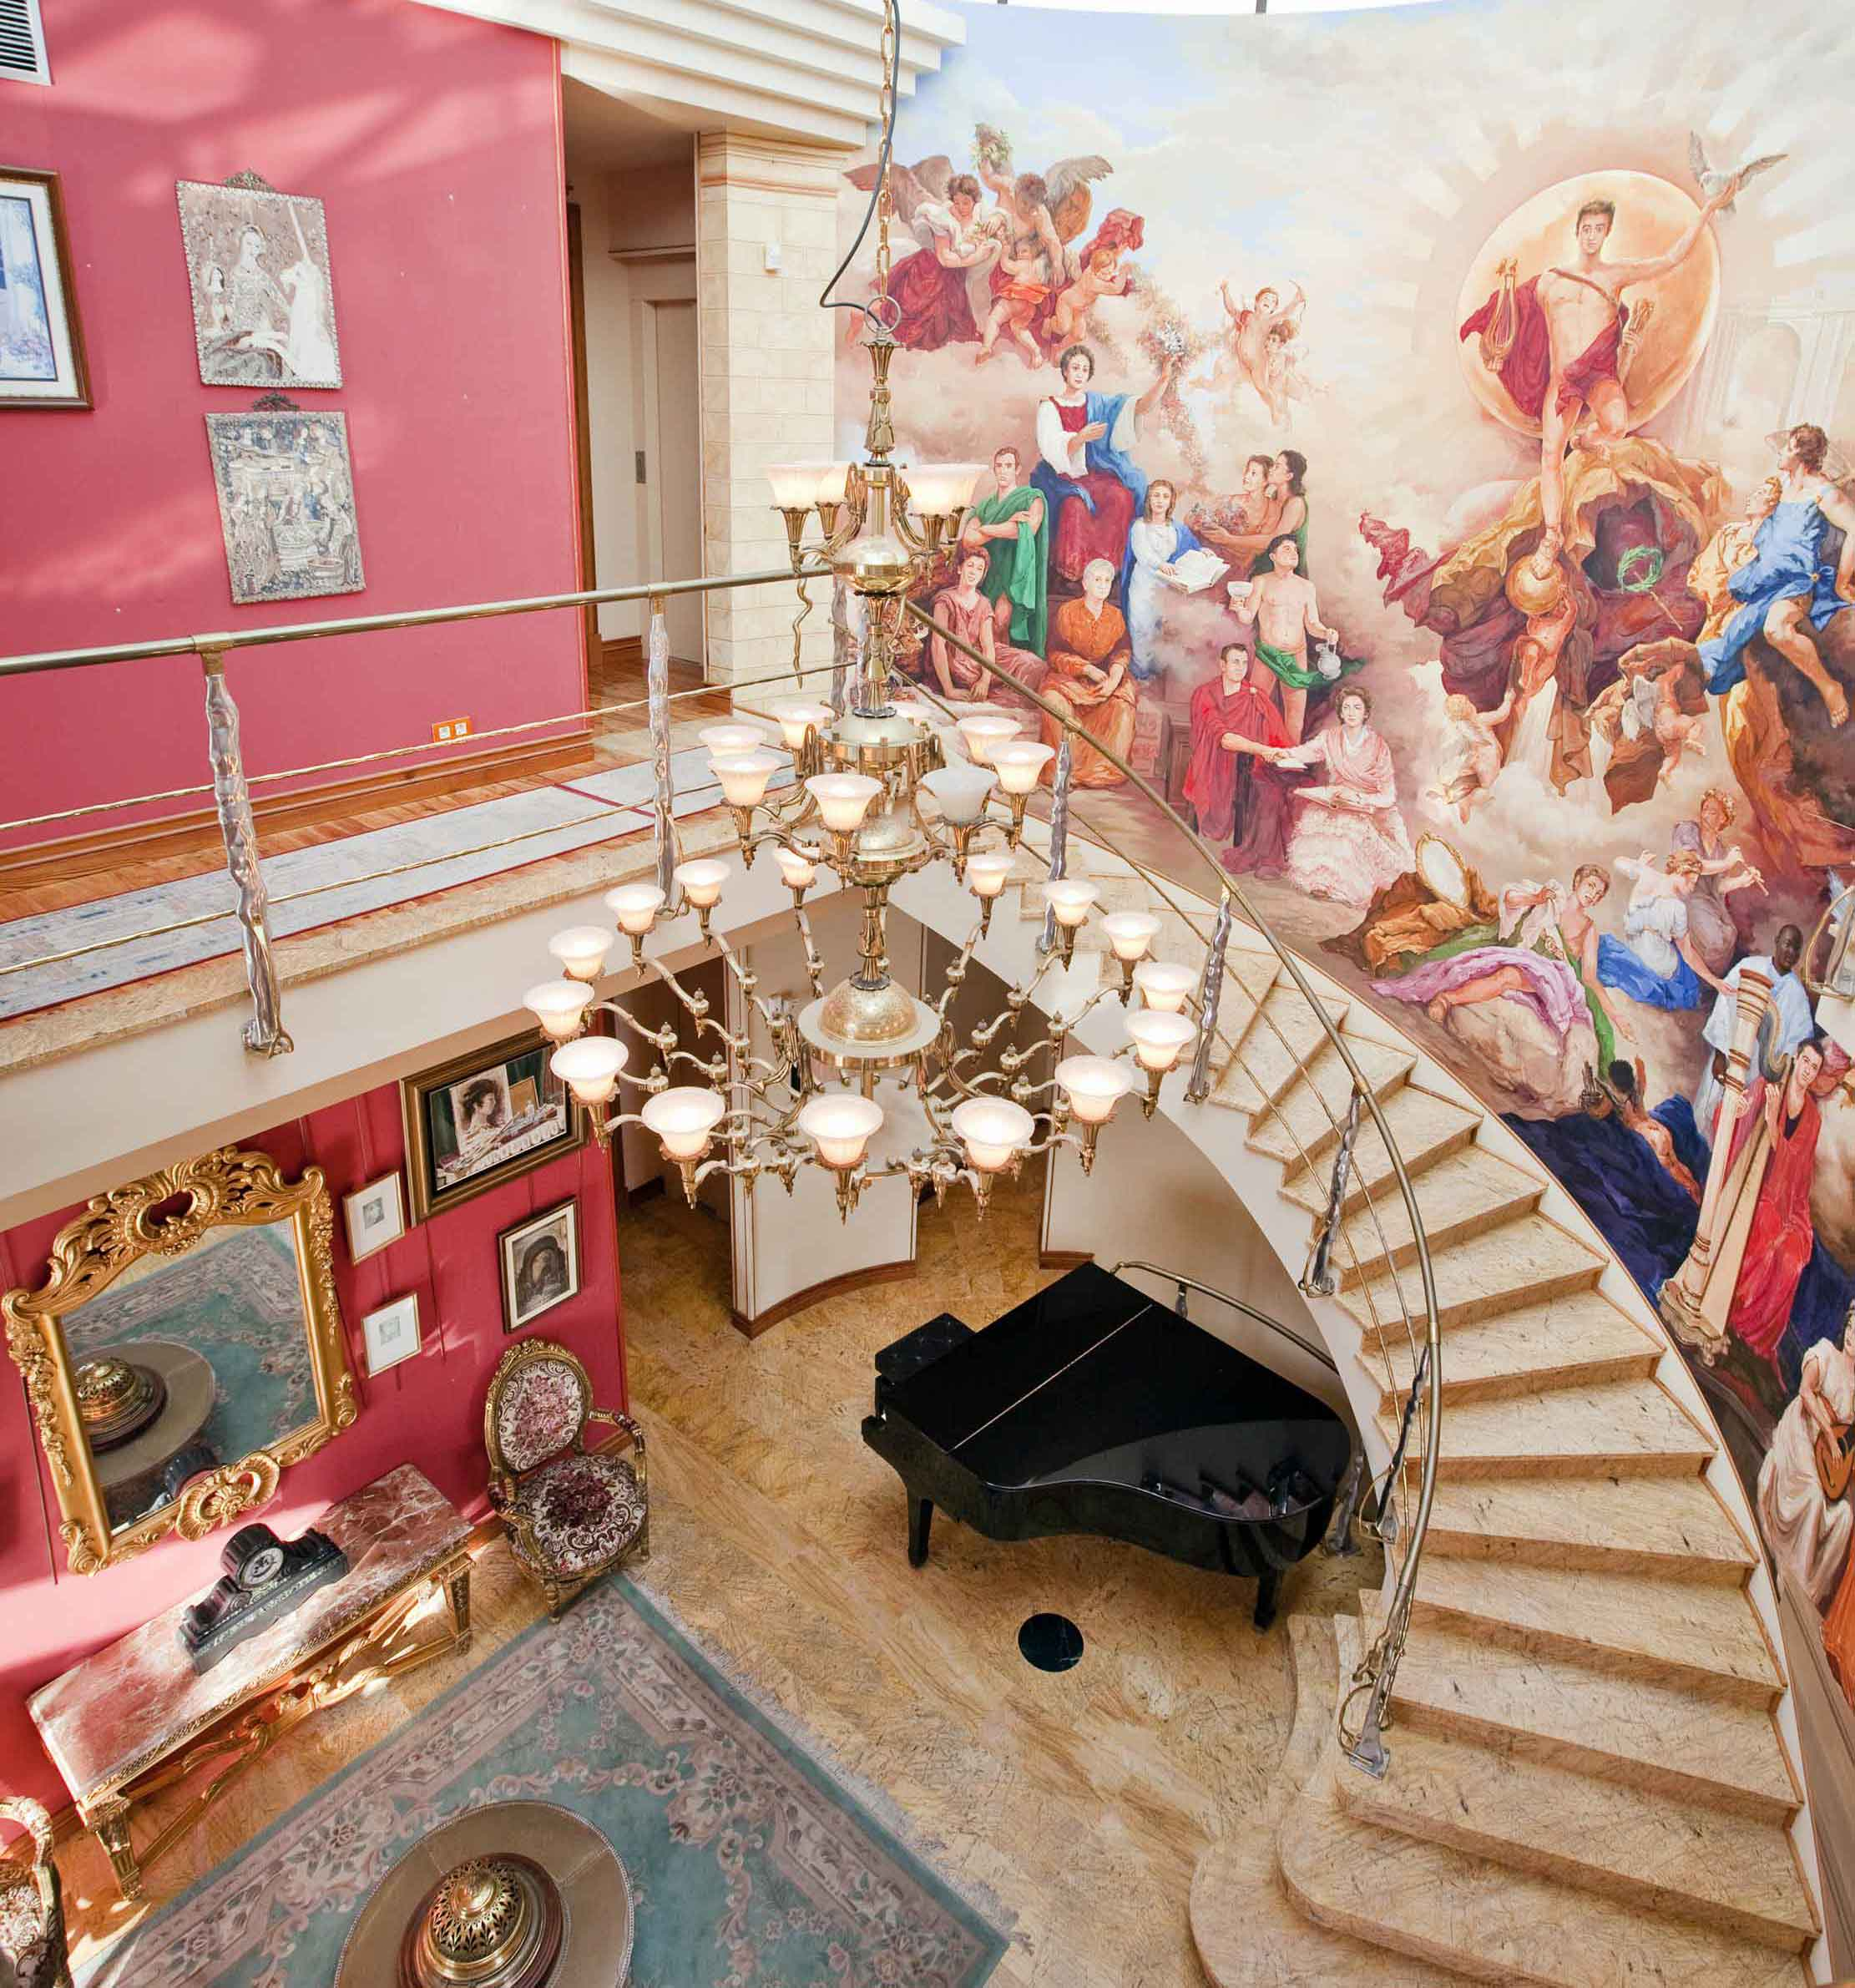 The interior is arrayed with unique artisanal details. The centerpiece of the grand foyer is an extraordinary floating staircase adorned with a mural painted by hand by a local artist and depicting scenes from classical antiquity.